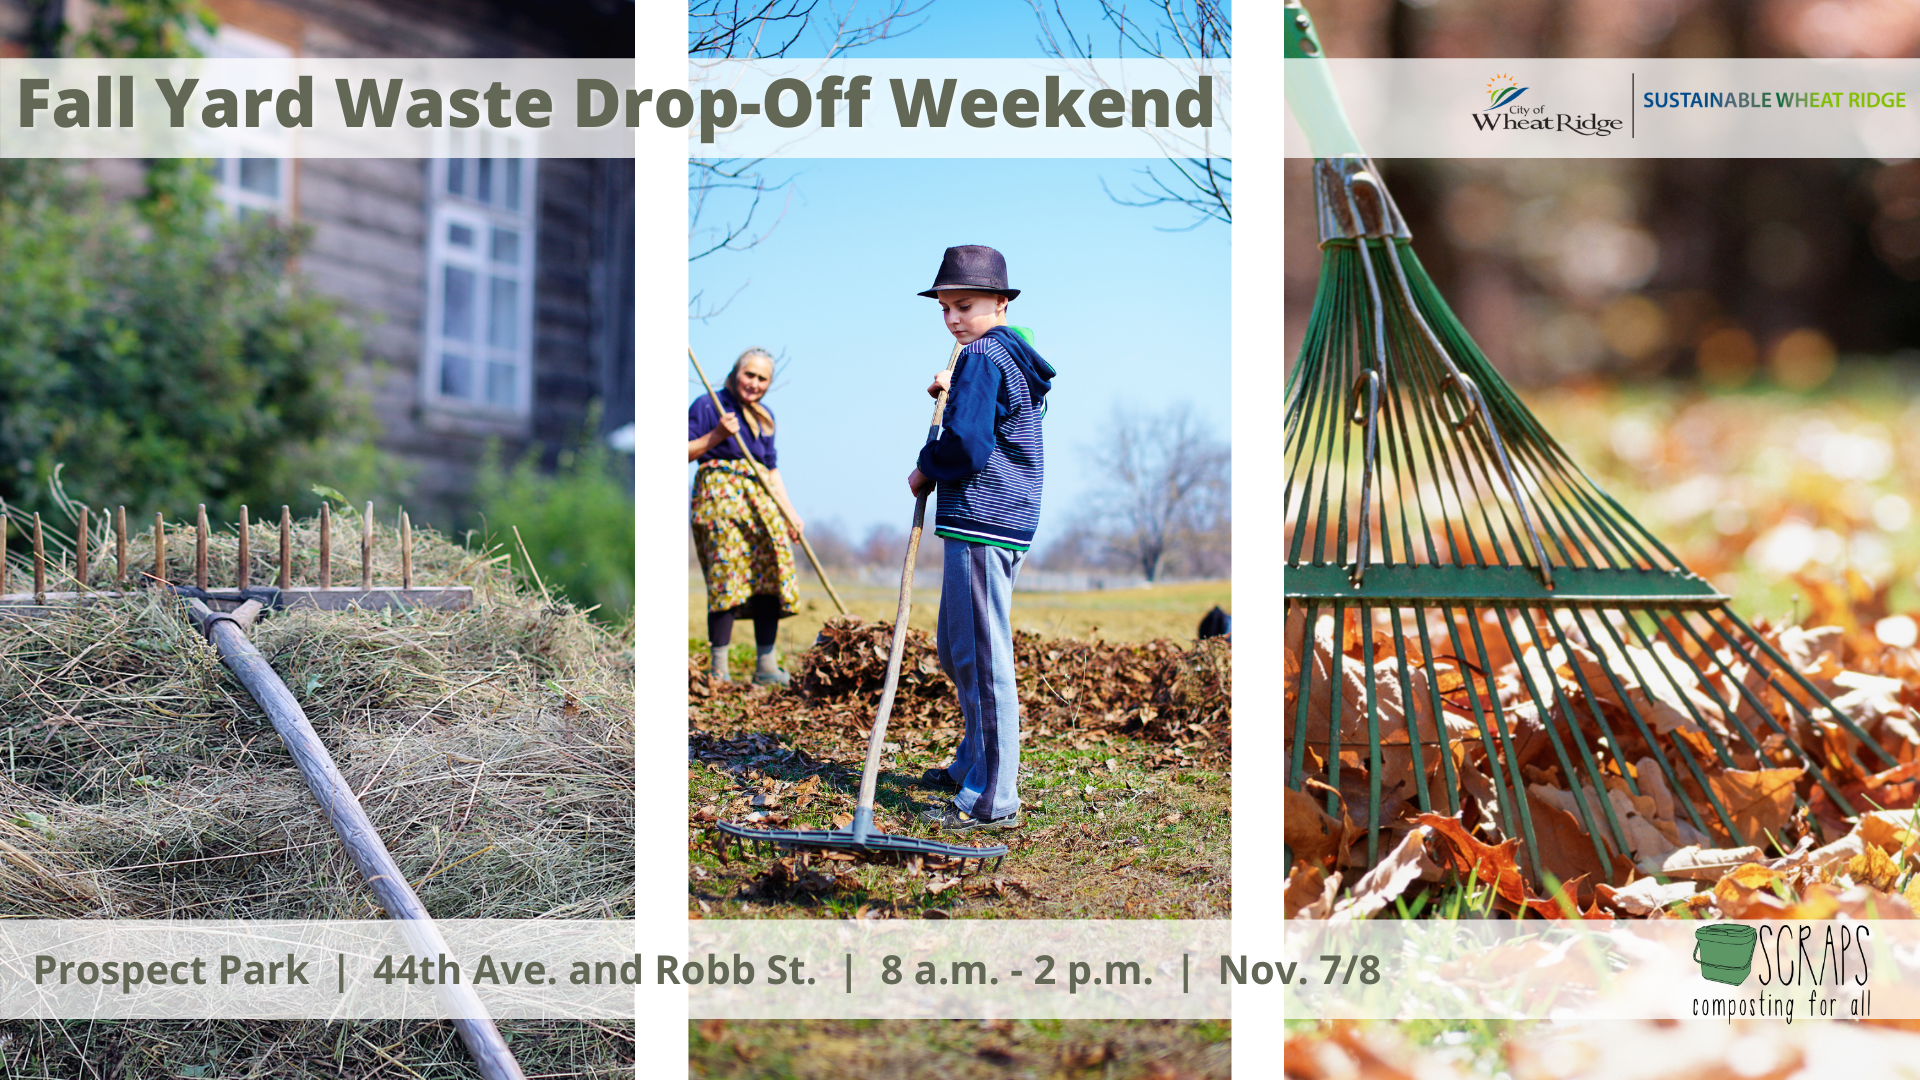 People raking leaves and dates of Yard Waste Drop off Nov 7 and 8